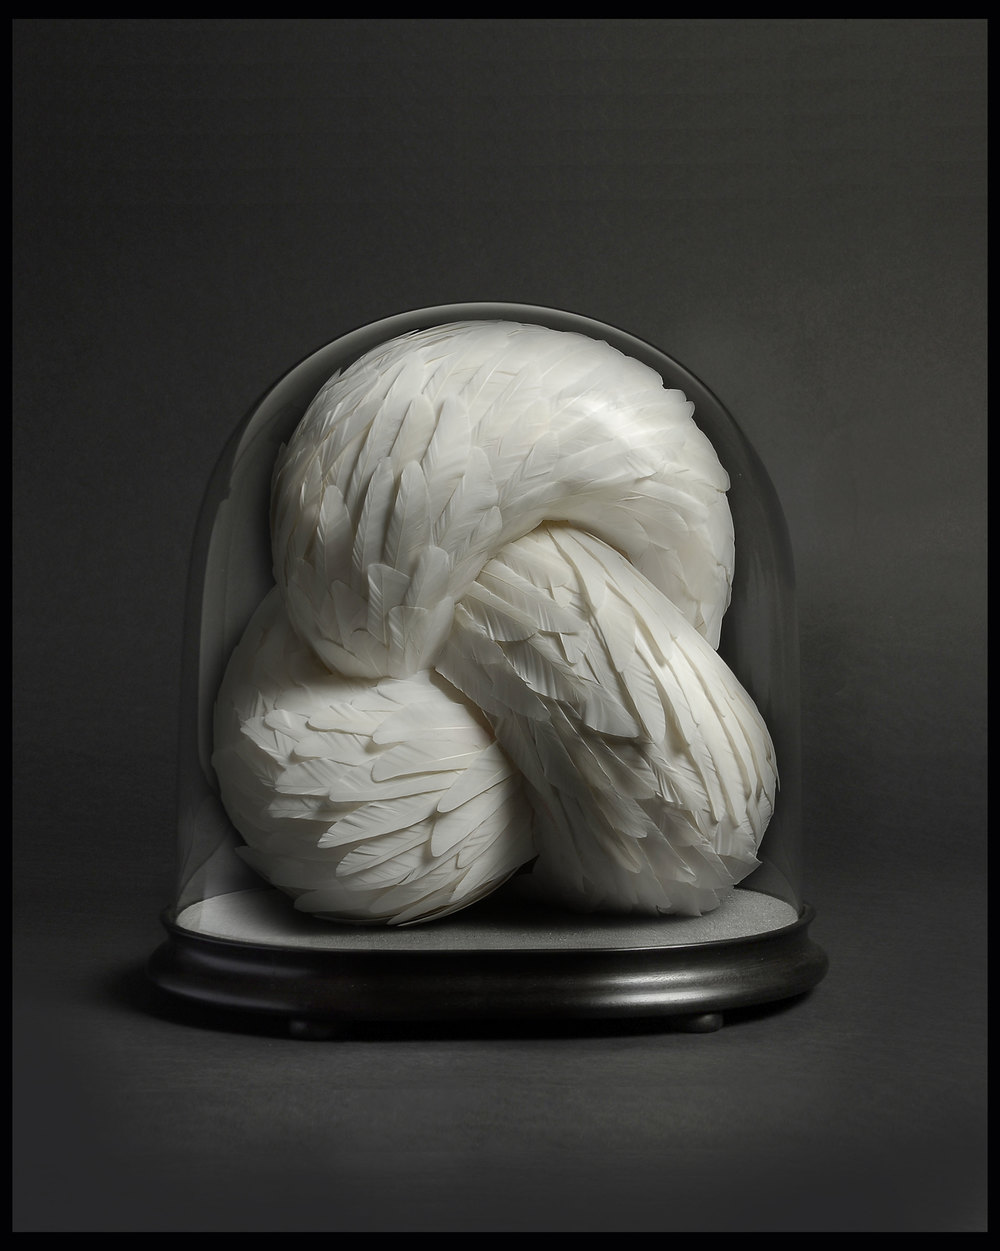 Crave, 2012, Kate MccGwire